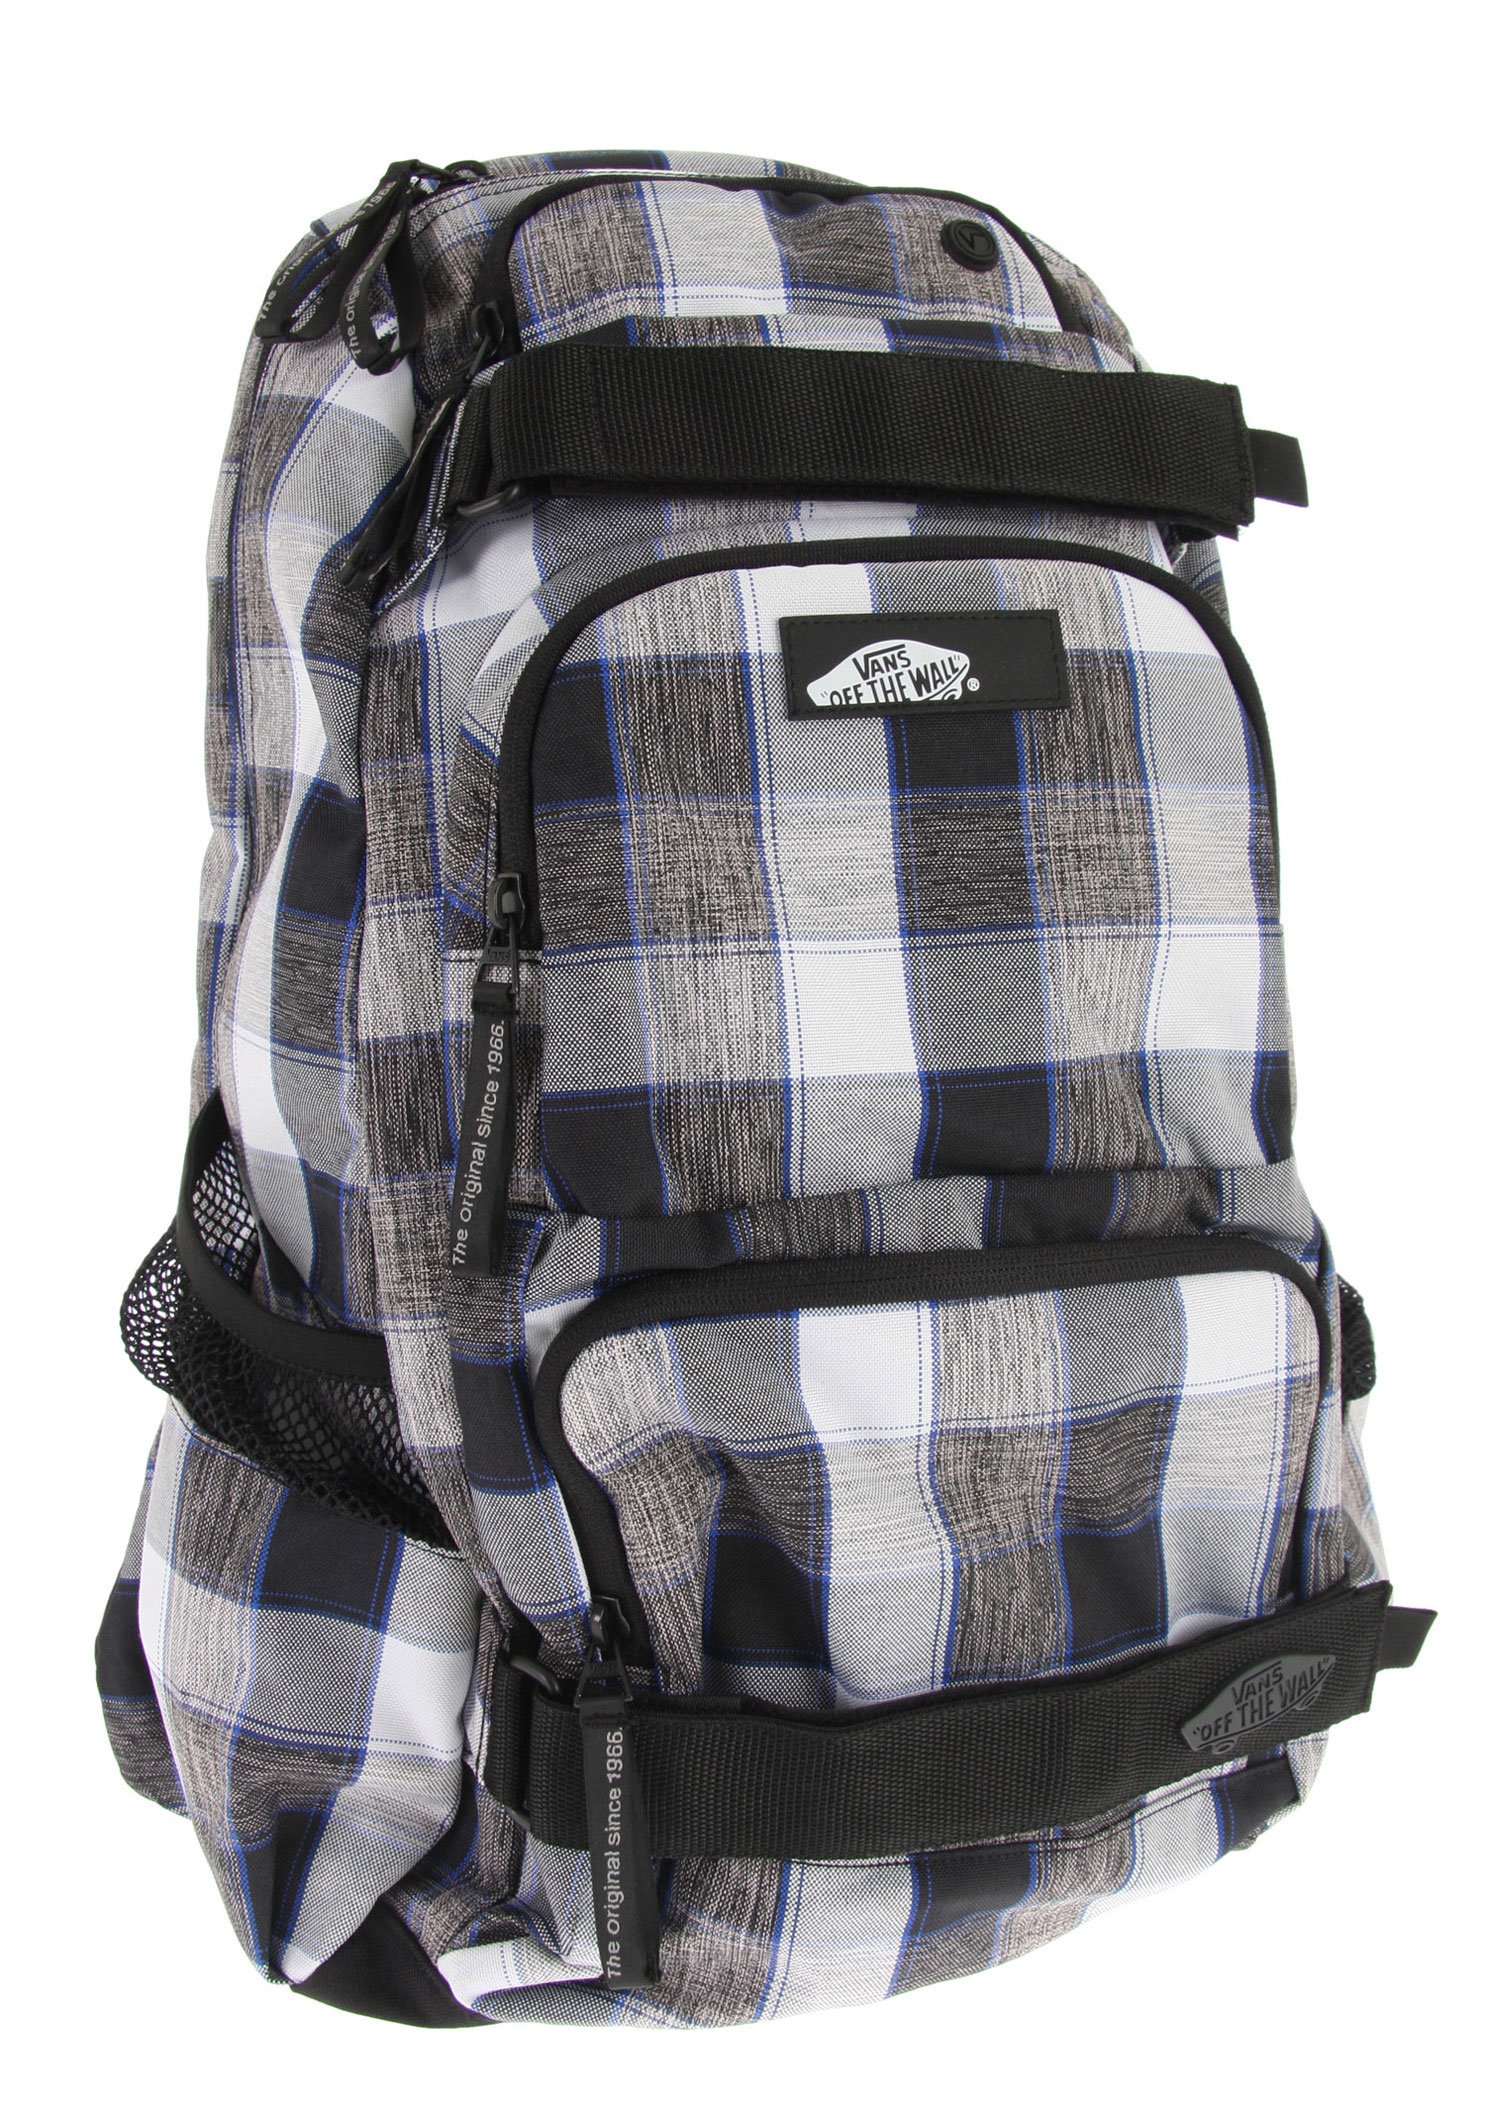 Skateboard The Vans Treflip Backpack has an ultra modern skate pack design, which incorporates state-of-the-art innovations like integrated internal organizers, a padded top pocket for media player or sunglasses, a padded internal cell phone pocket, an easy-access laptop sleeve, a large main compartment, side mesh stash pockets, extra cushioned shoulder straps and adjustable skateboard straps. Made of sturdy 100% polyester with thermoplastic backing. - $27.95